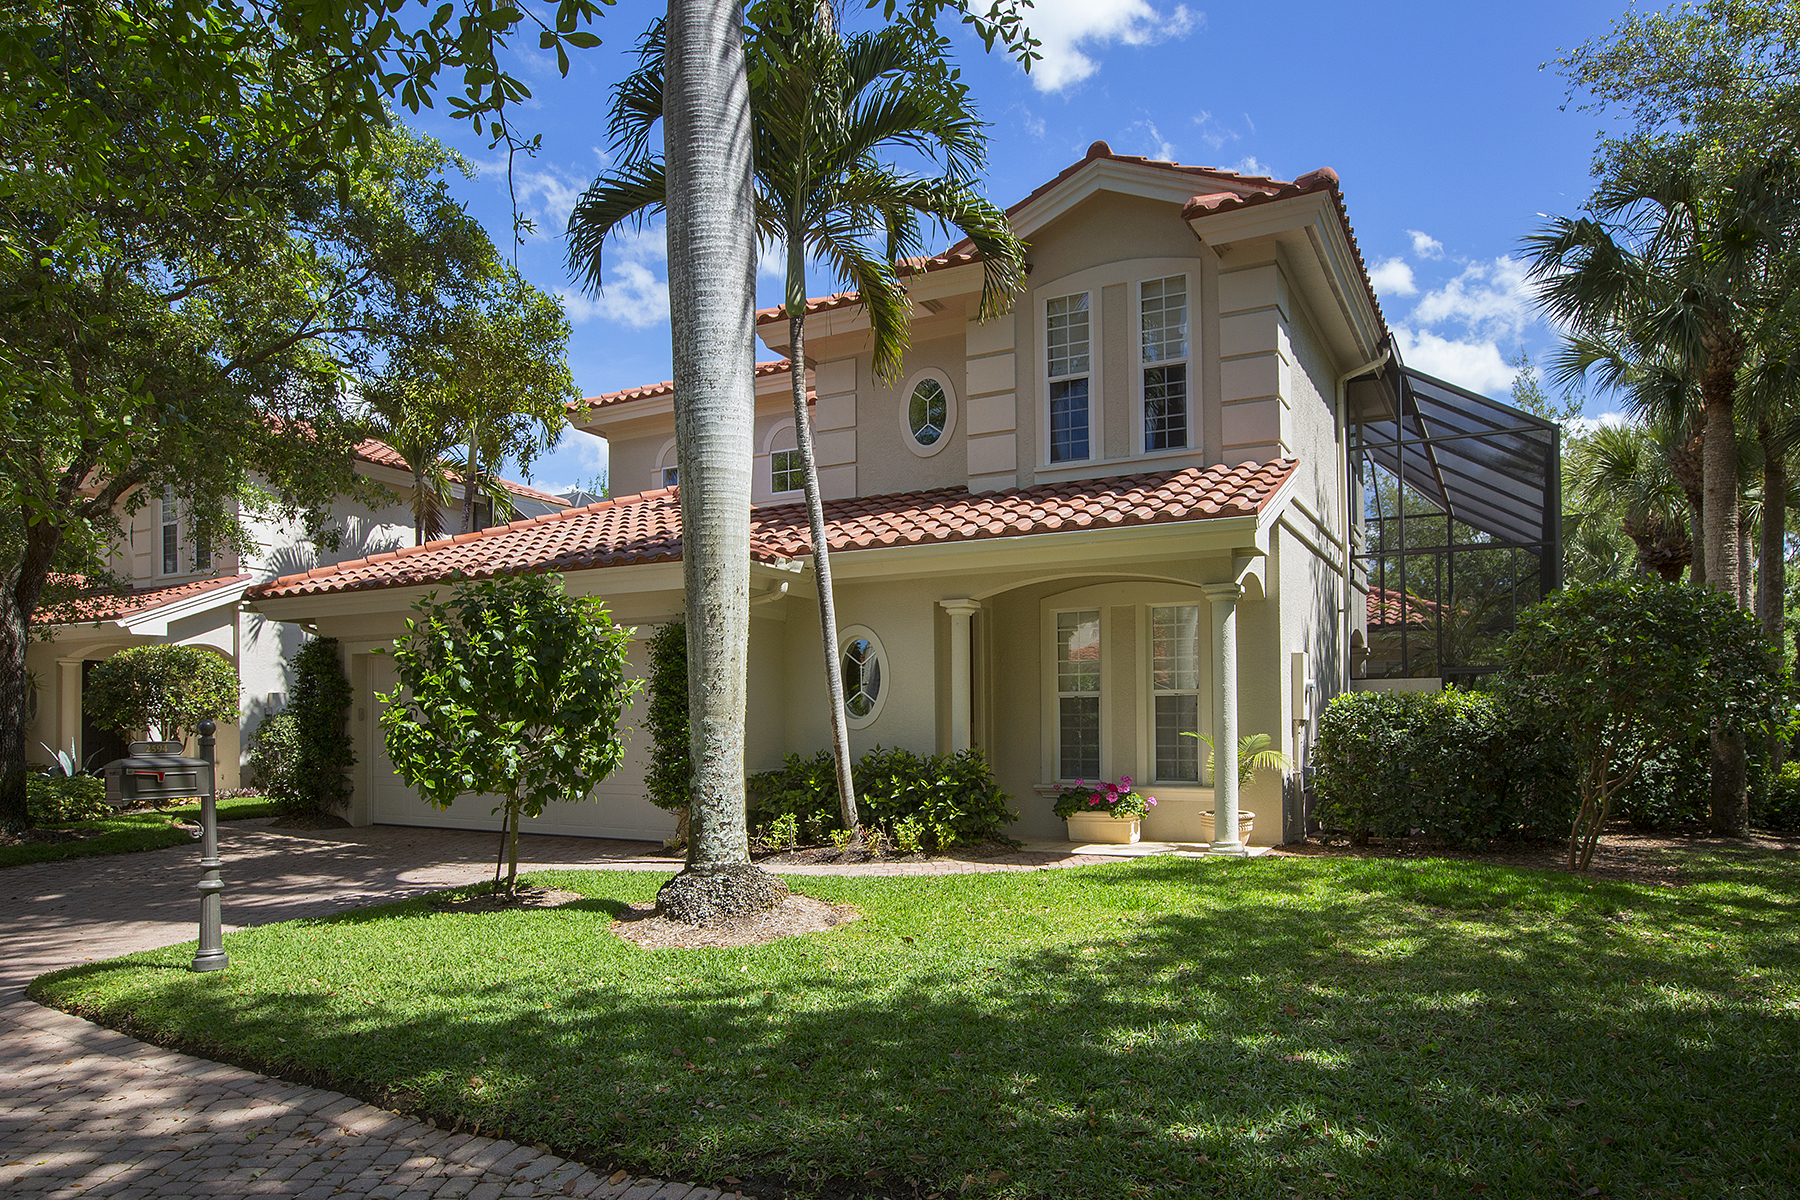 Single Family Home for Sale at 2594 Lermitage Ln , Naples, FL 34105 2594 Lermitage Ln, Naples, Florida 34105 United States